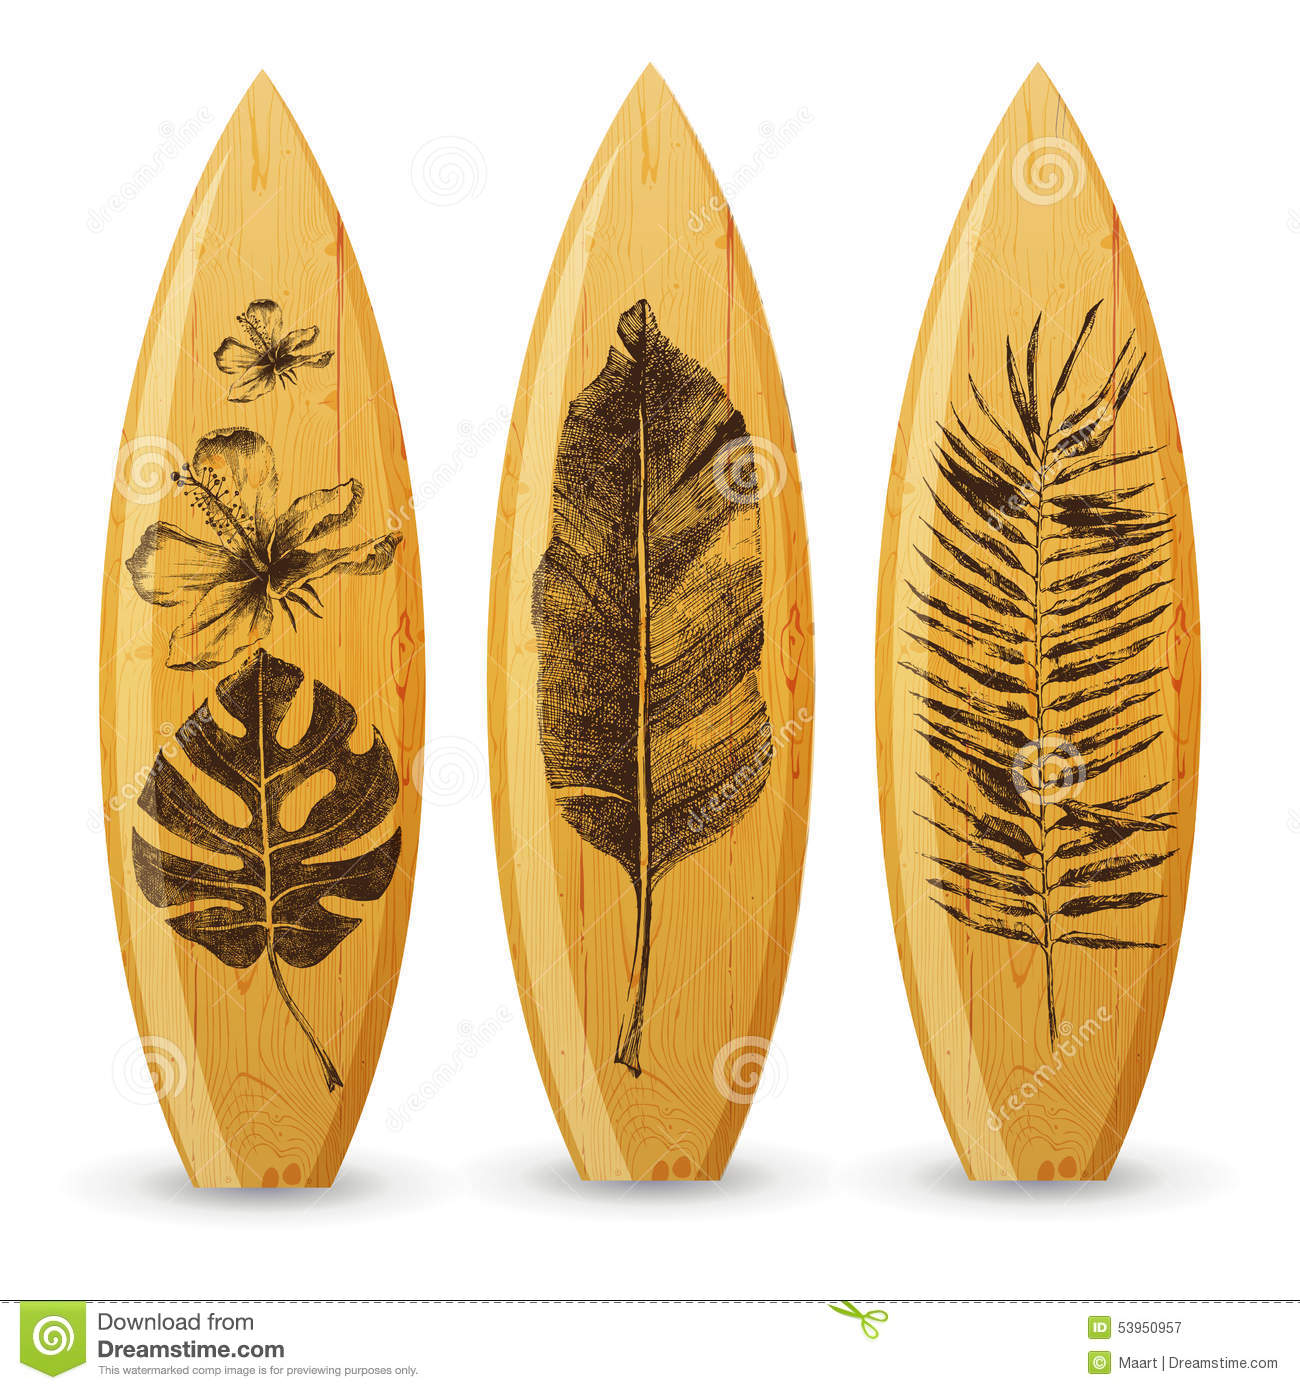 Deco Planche De Surf wooden surfboards with hand drawn tropical leaves stock